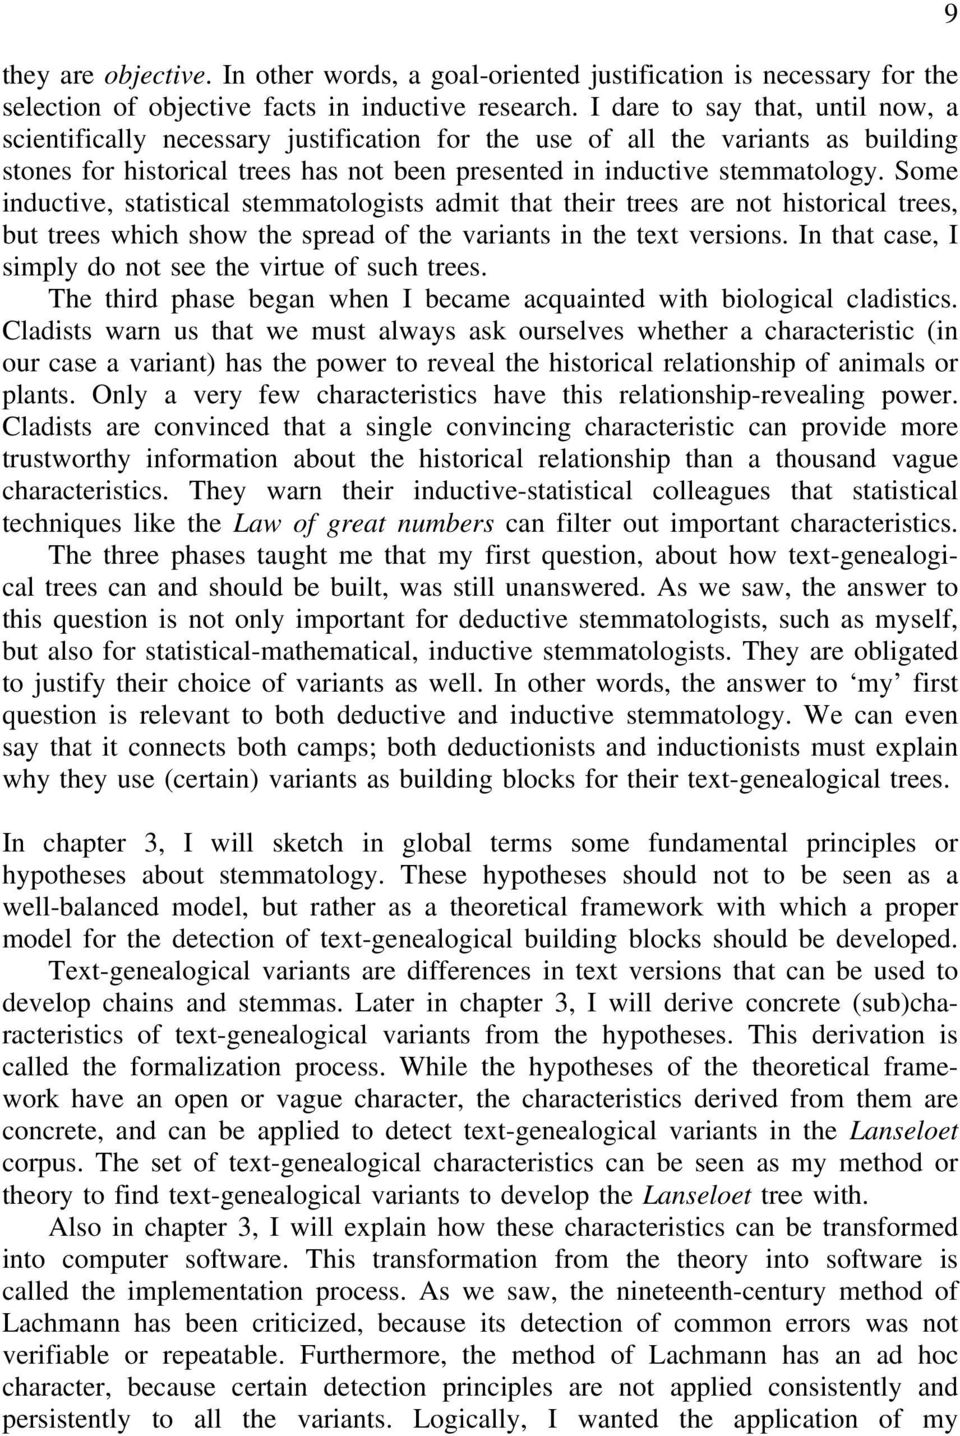 Some inductive, statistical stemmatologists admit that their trees are not historical trees, but trees which show the spread of the variants in the text versions.